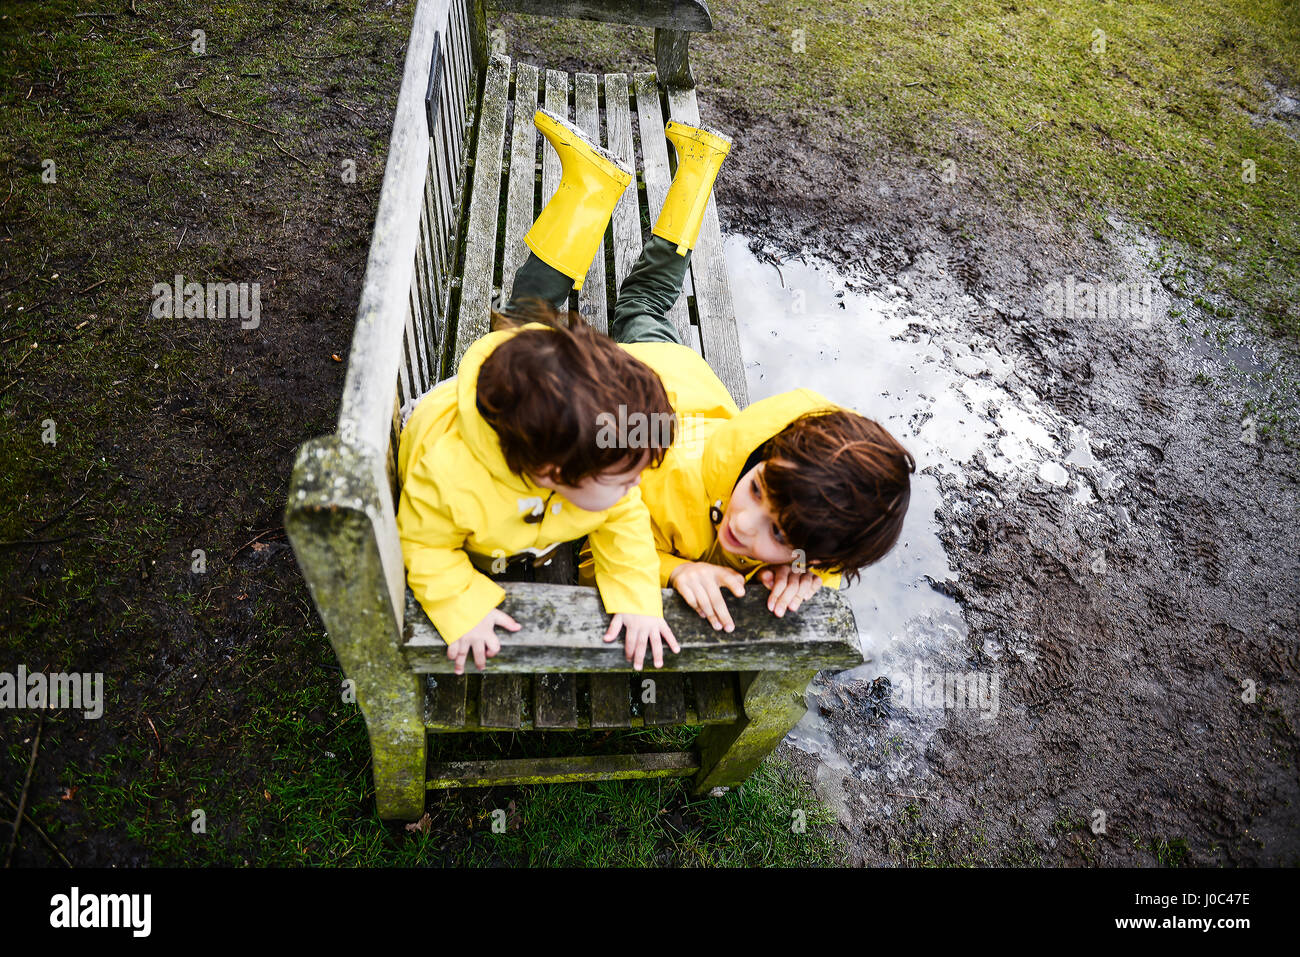 Overhead view of baby boy and brother in yellow anoraks on park bench - Stock Image